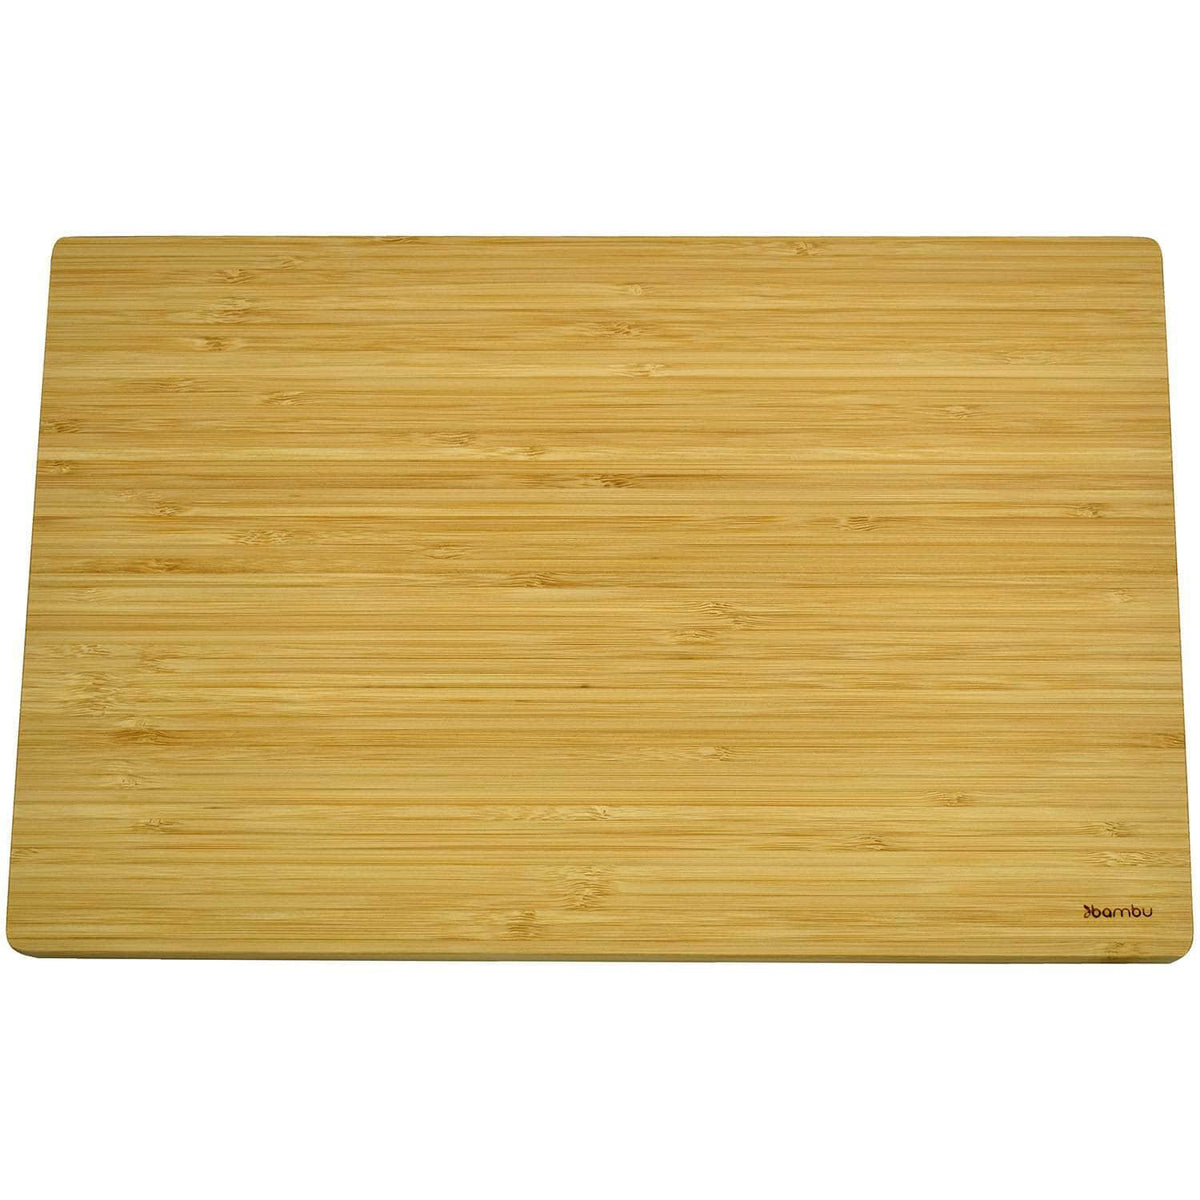 *NEW* Bamboo undercut cutting & serving boards Large